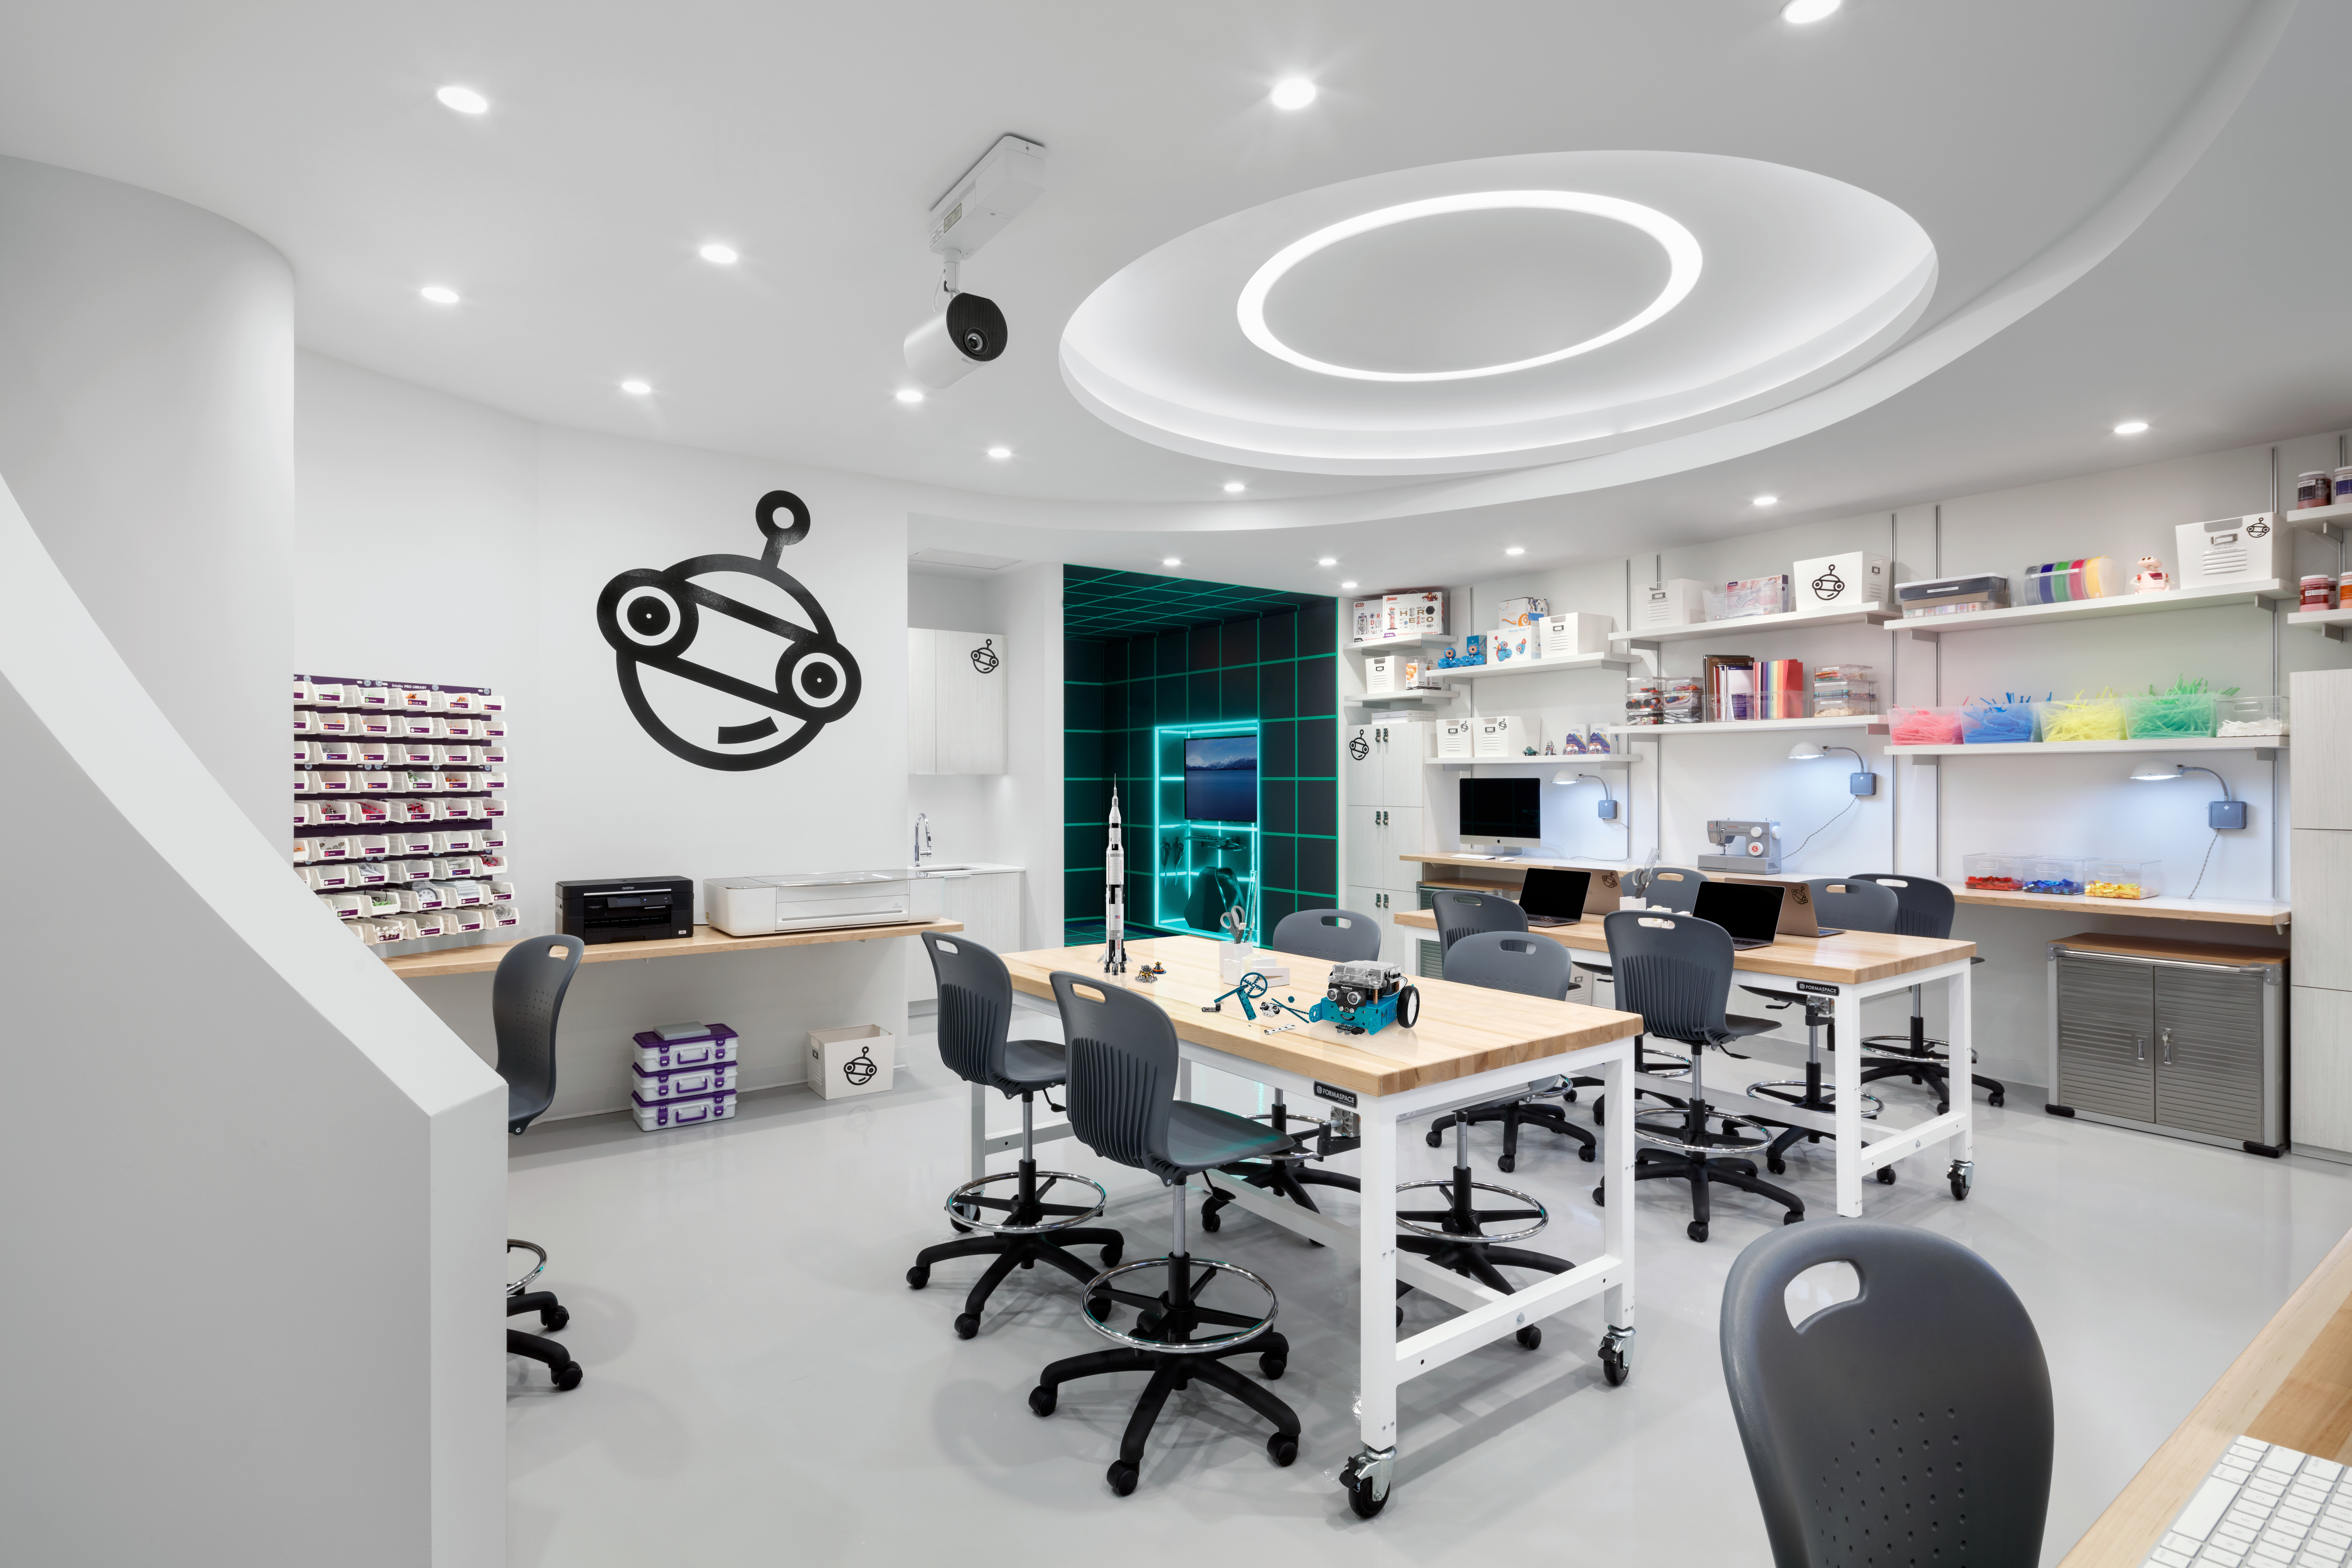 View inside Sandbox, a high-tech, collaborative workspace for children to create in 520 W 28th luxury condos in New York.